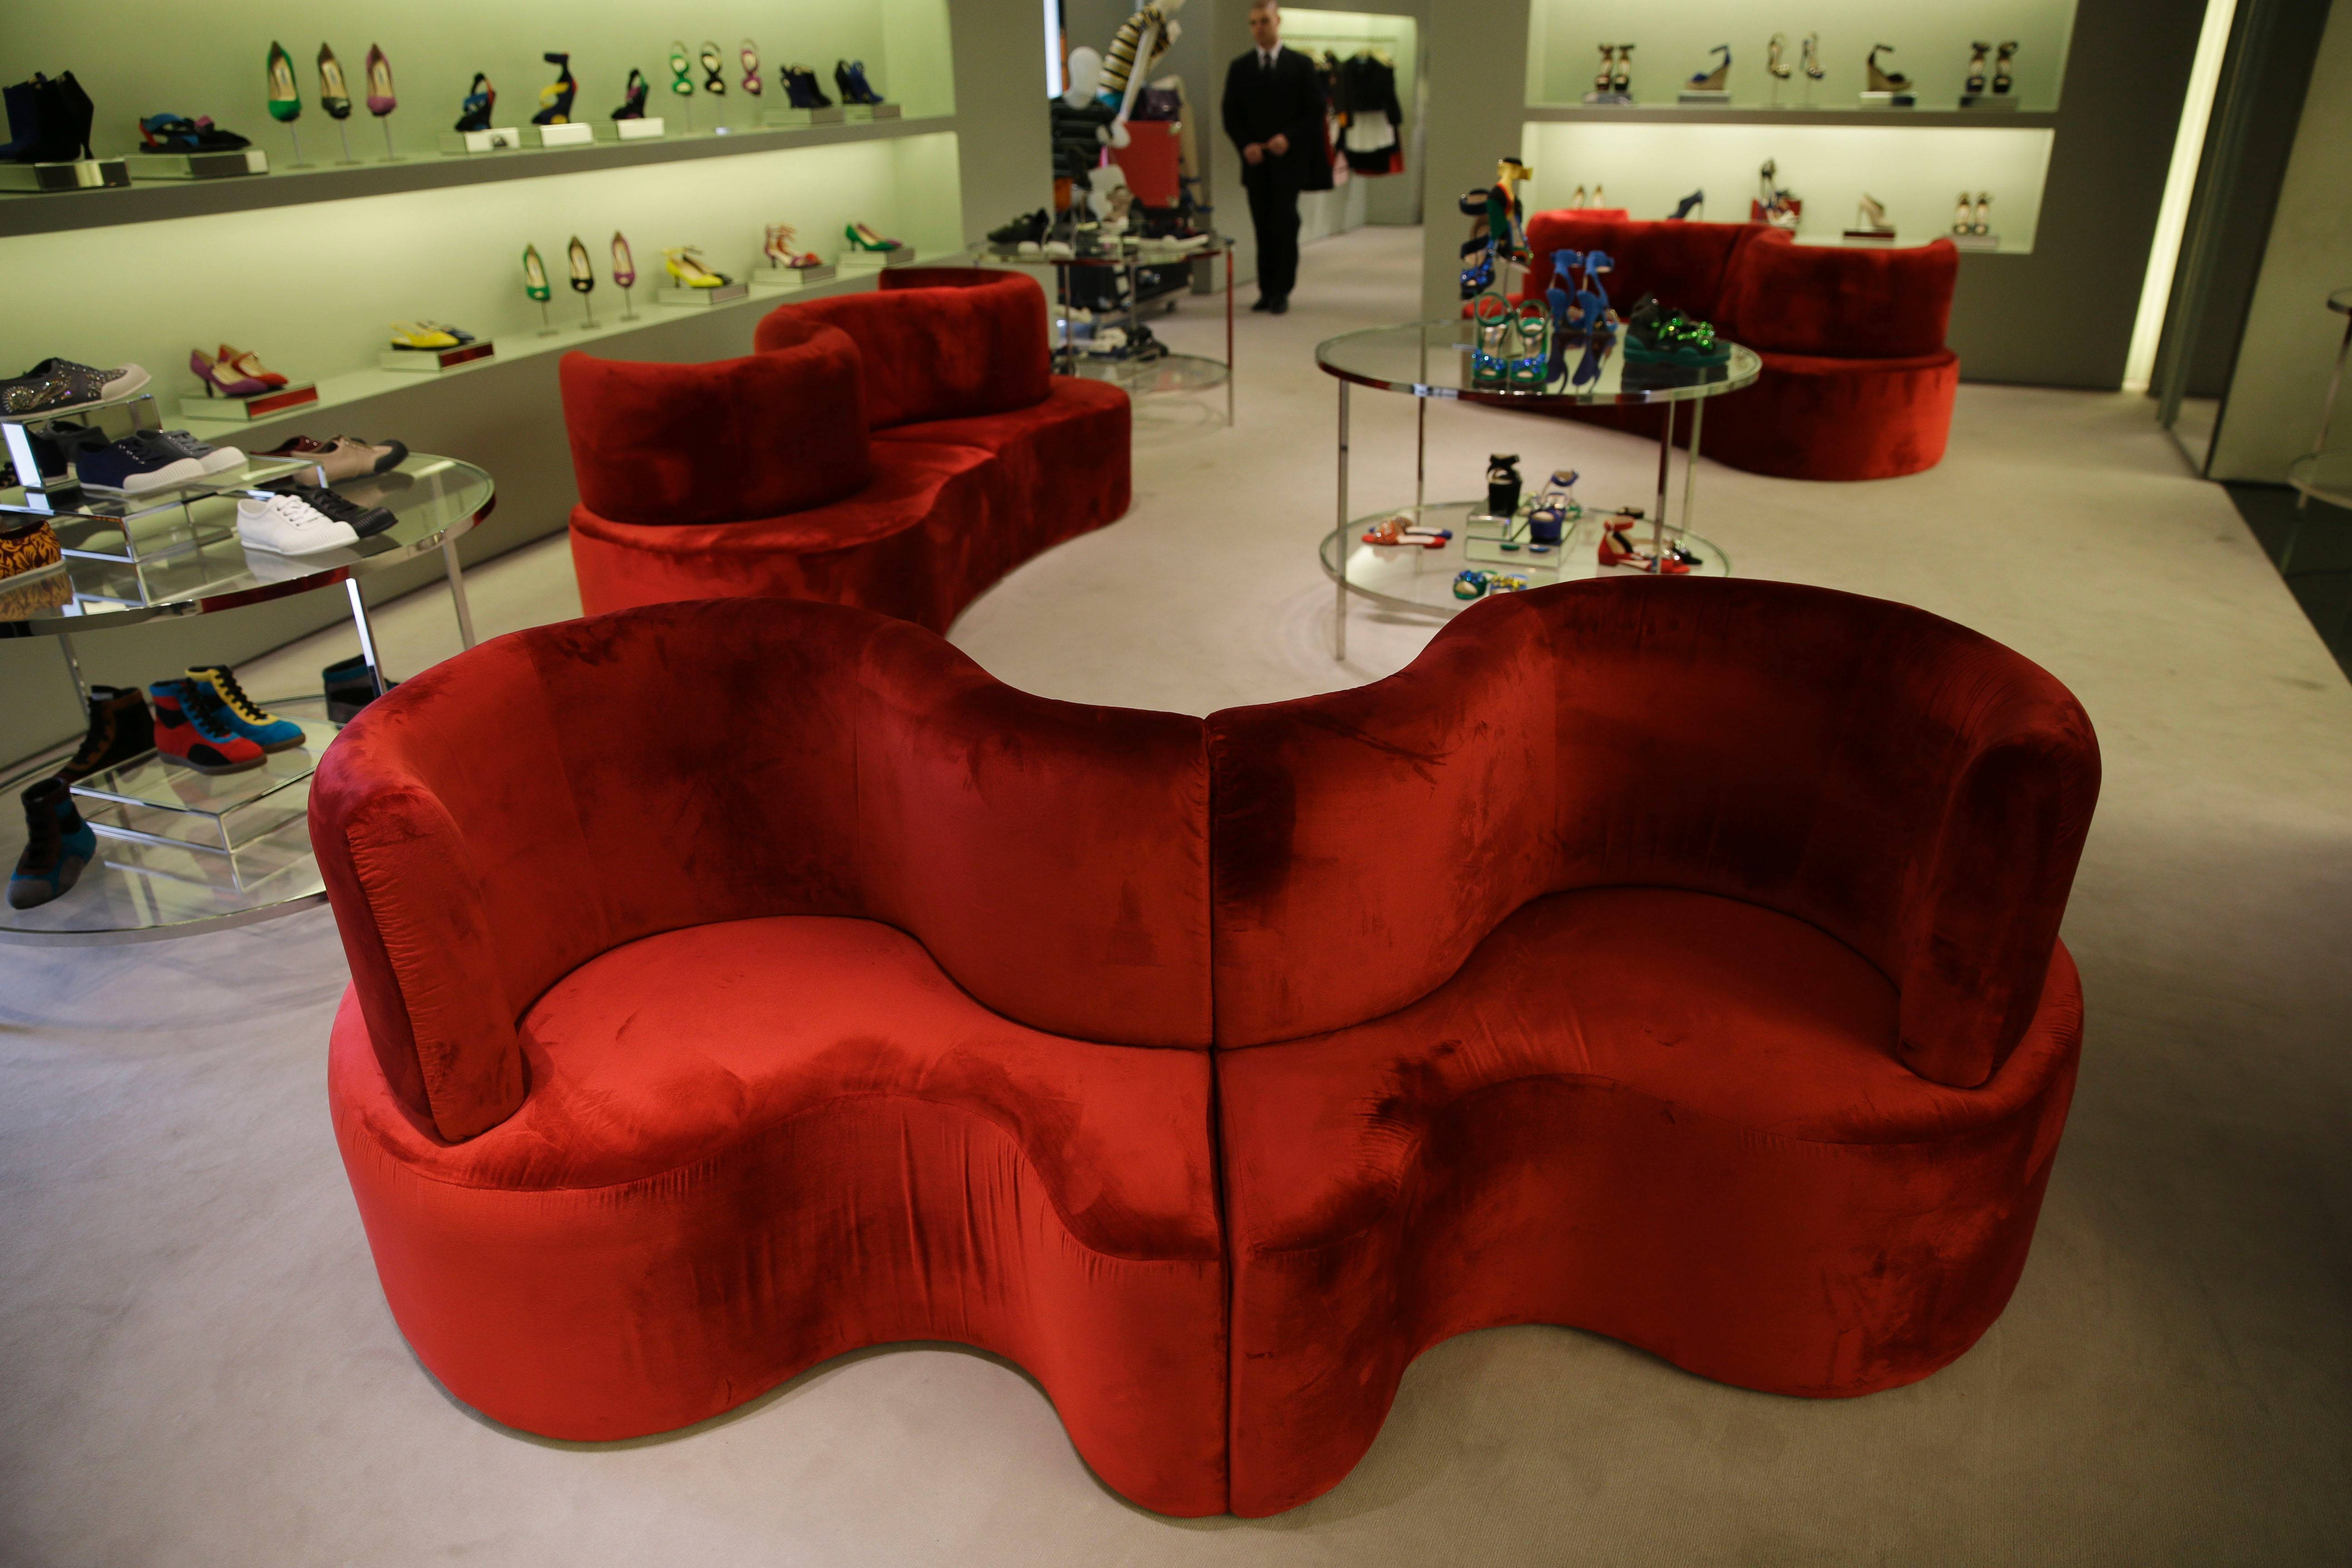 Prada CloverLeaf Sofa is displayed at the fair. Fashion designers like Prada are increasingly expanding into home and furniture lines to complete their brands.